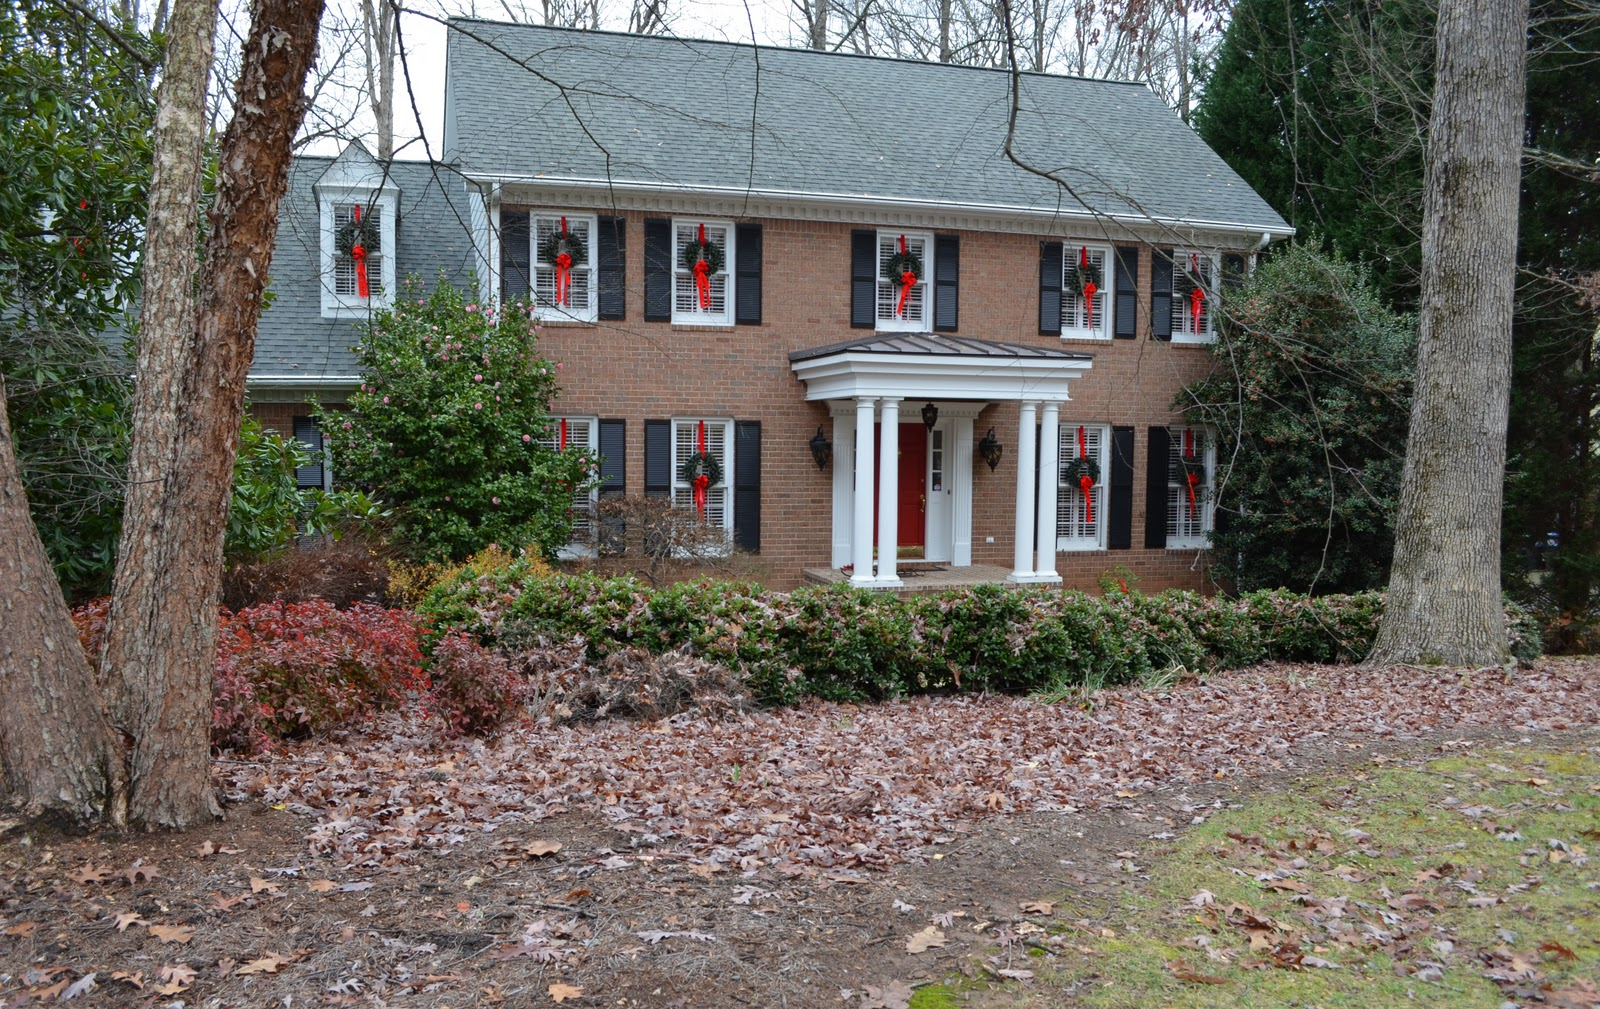 how to hang wreaths on outside exterior windows a previous year s view of the dormer windows with the garage windows below this pic was taken with the skinnier hanging ribbons before i changed them out